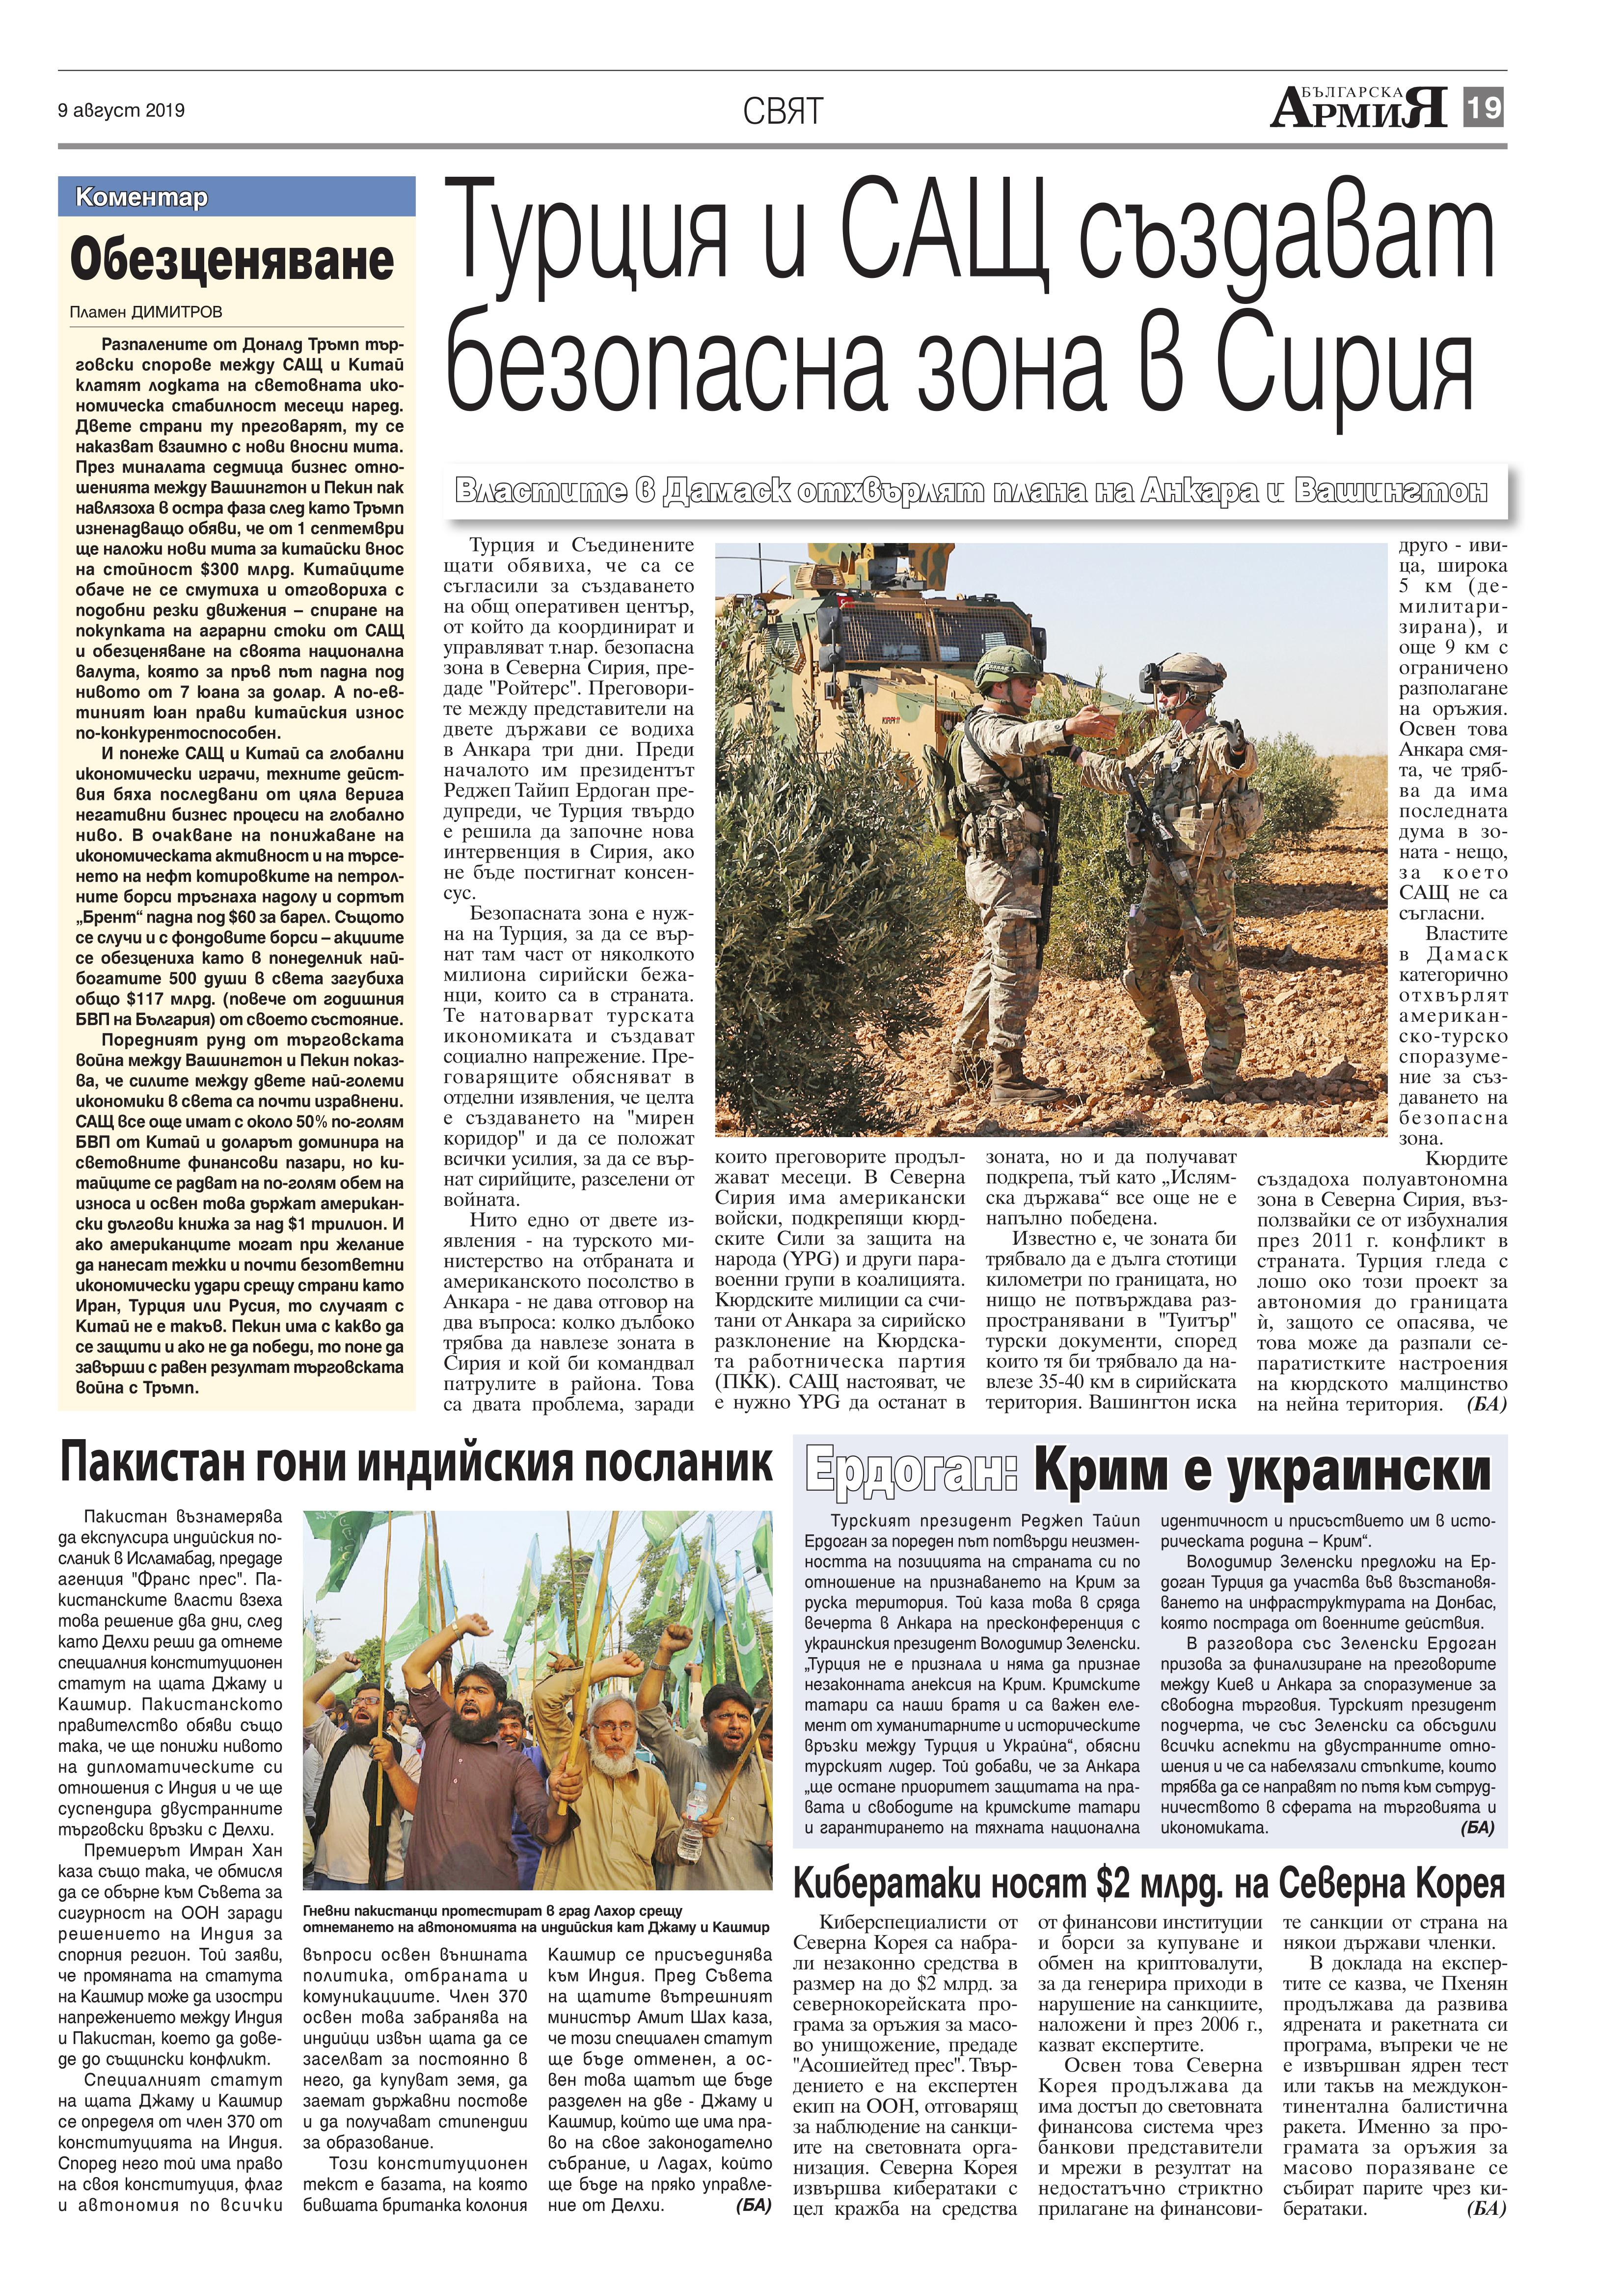 https://armymedia.bg/wp-content/uploads/2015/06/19.page1_-107.jpg